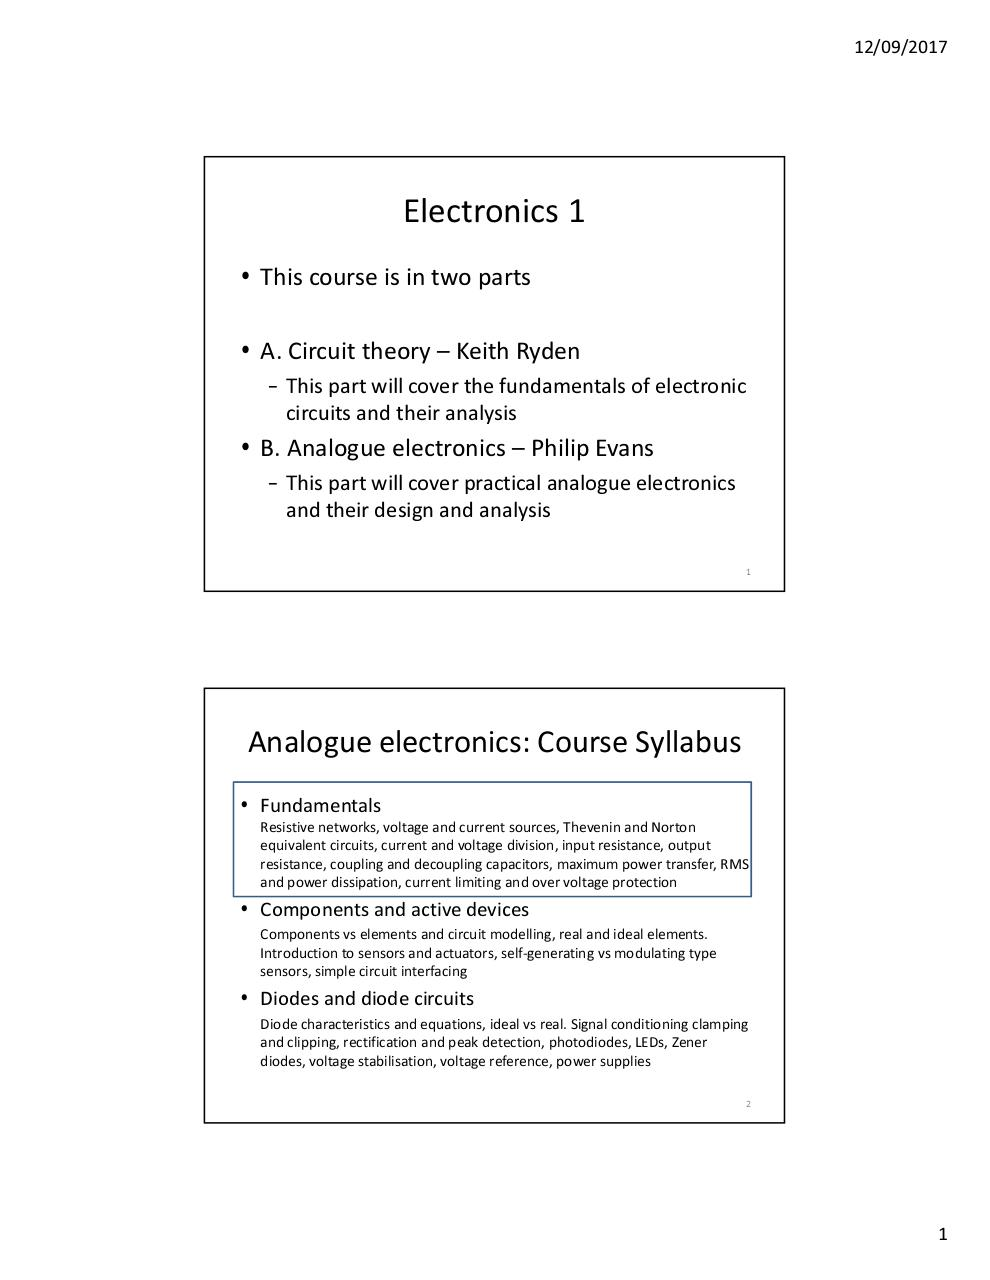 Microsoft Powerpoint Analogue Electronics 1 2017 By Pe0009 Simple Circuits 2017pdf Page 98